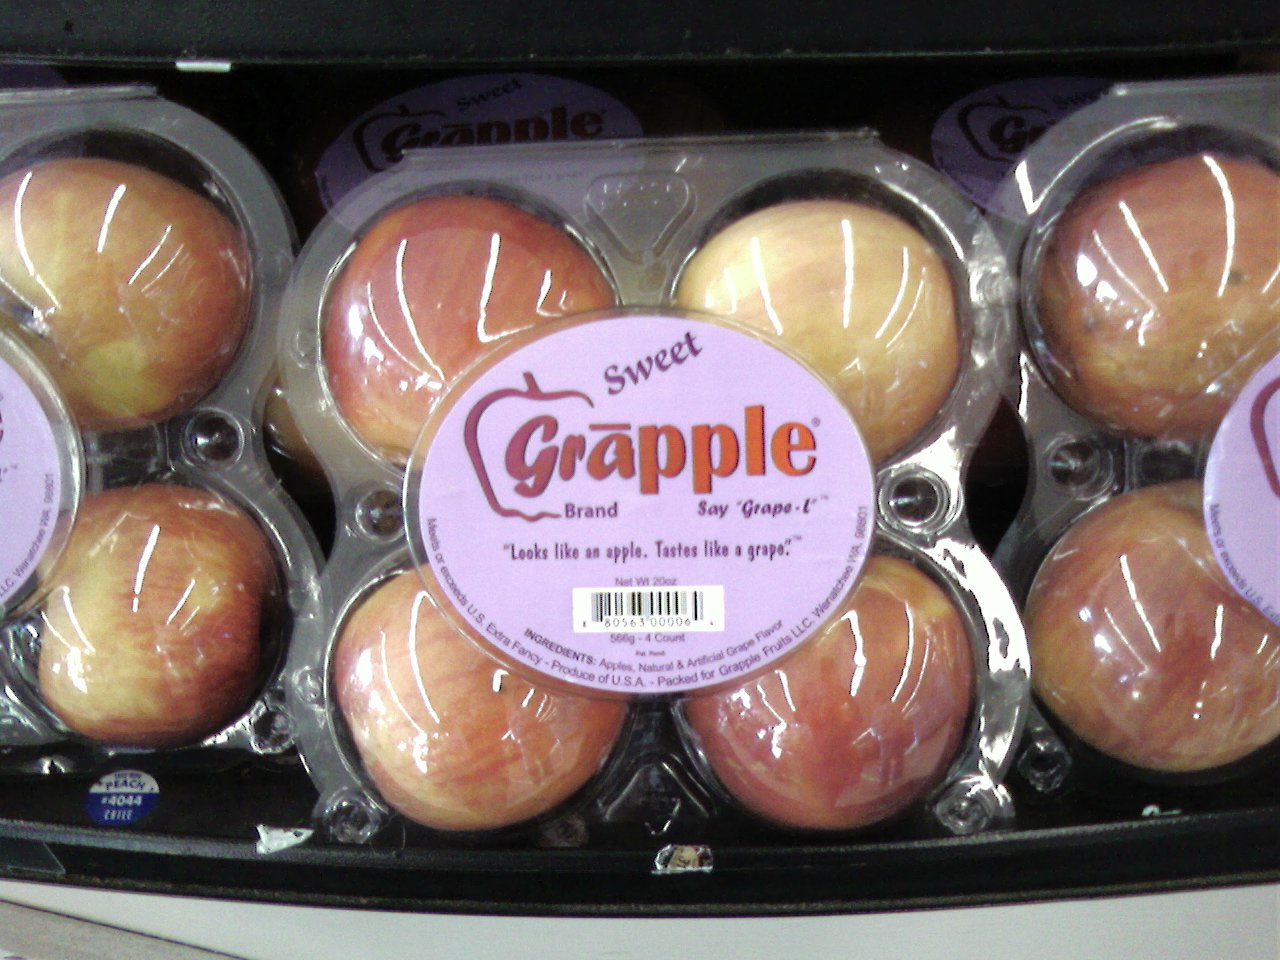 box_of_gr_pples_in_a_supermarket_20080312.jpg